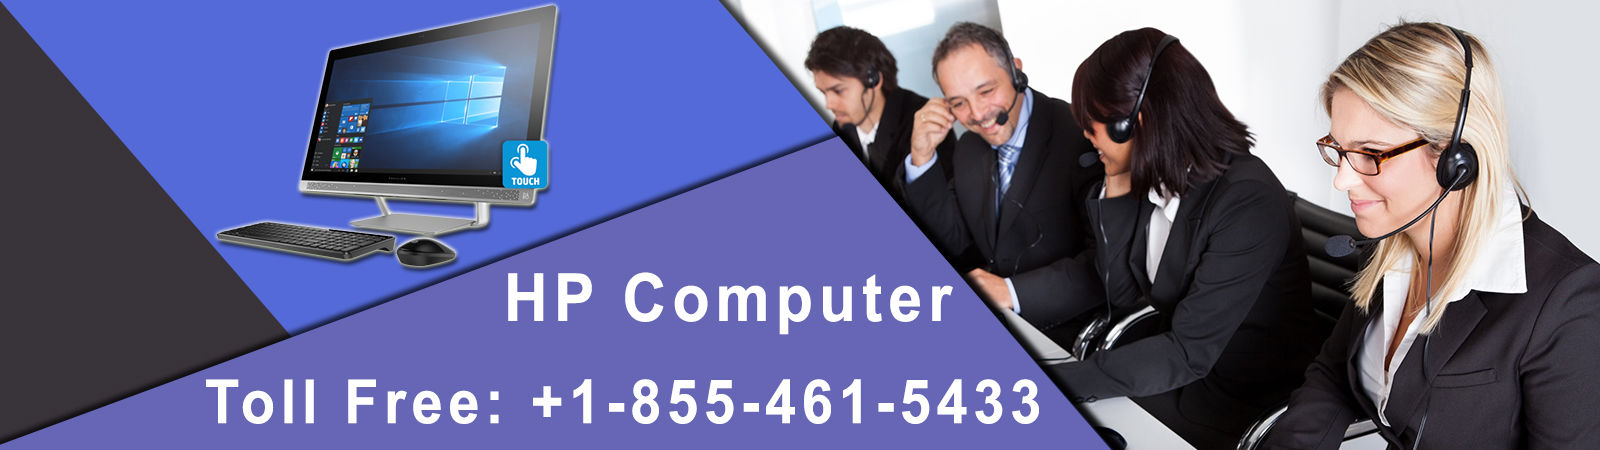 HP Computer Repair Technical Support Number +1-855-461-5433